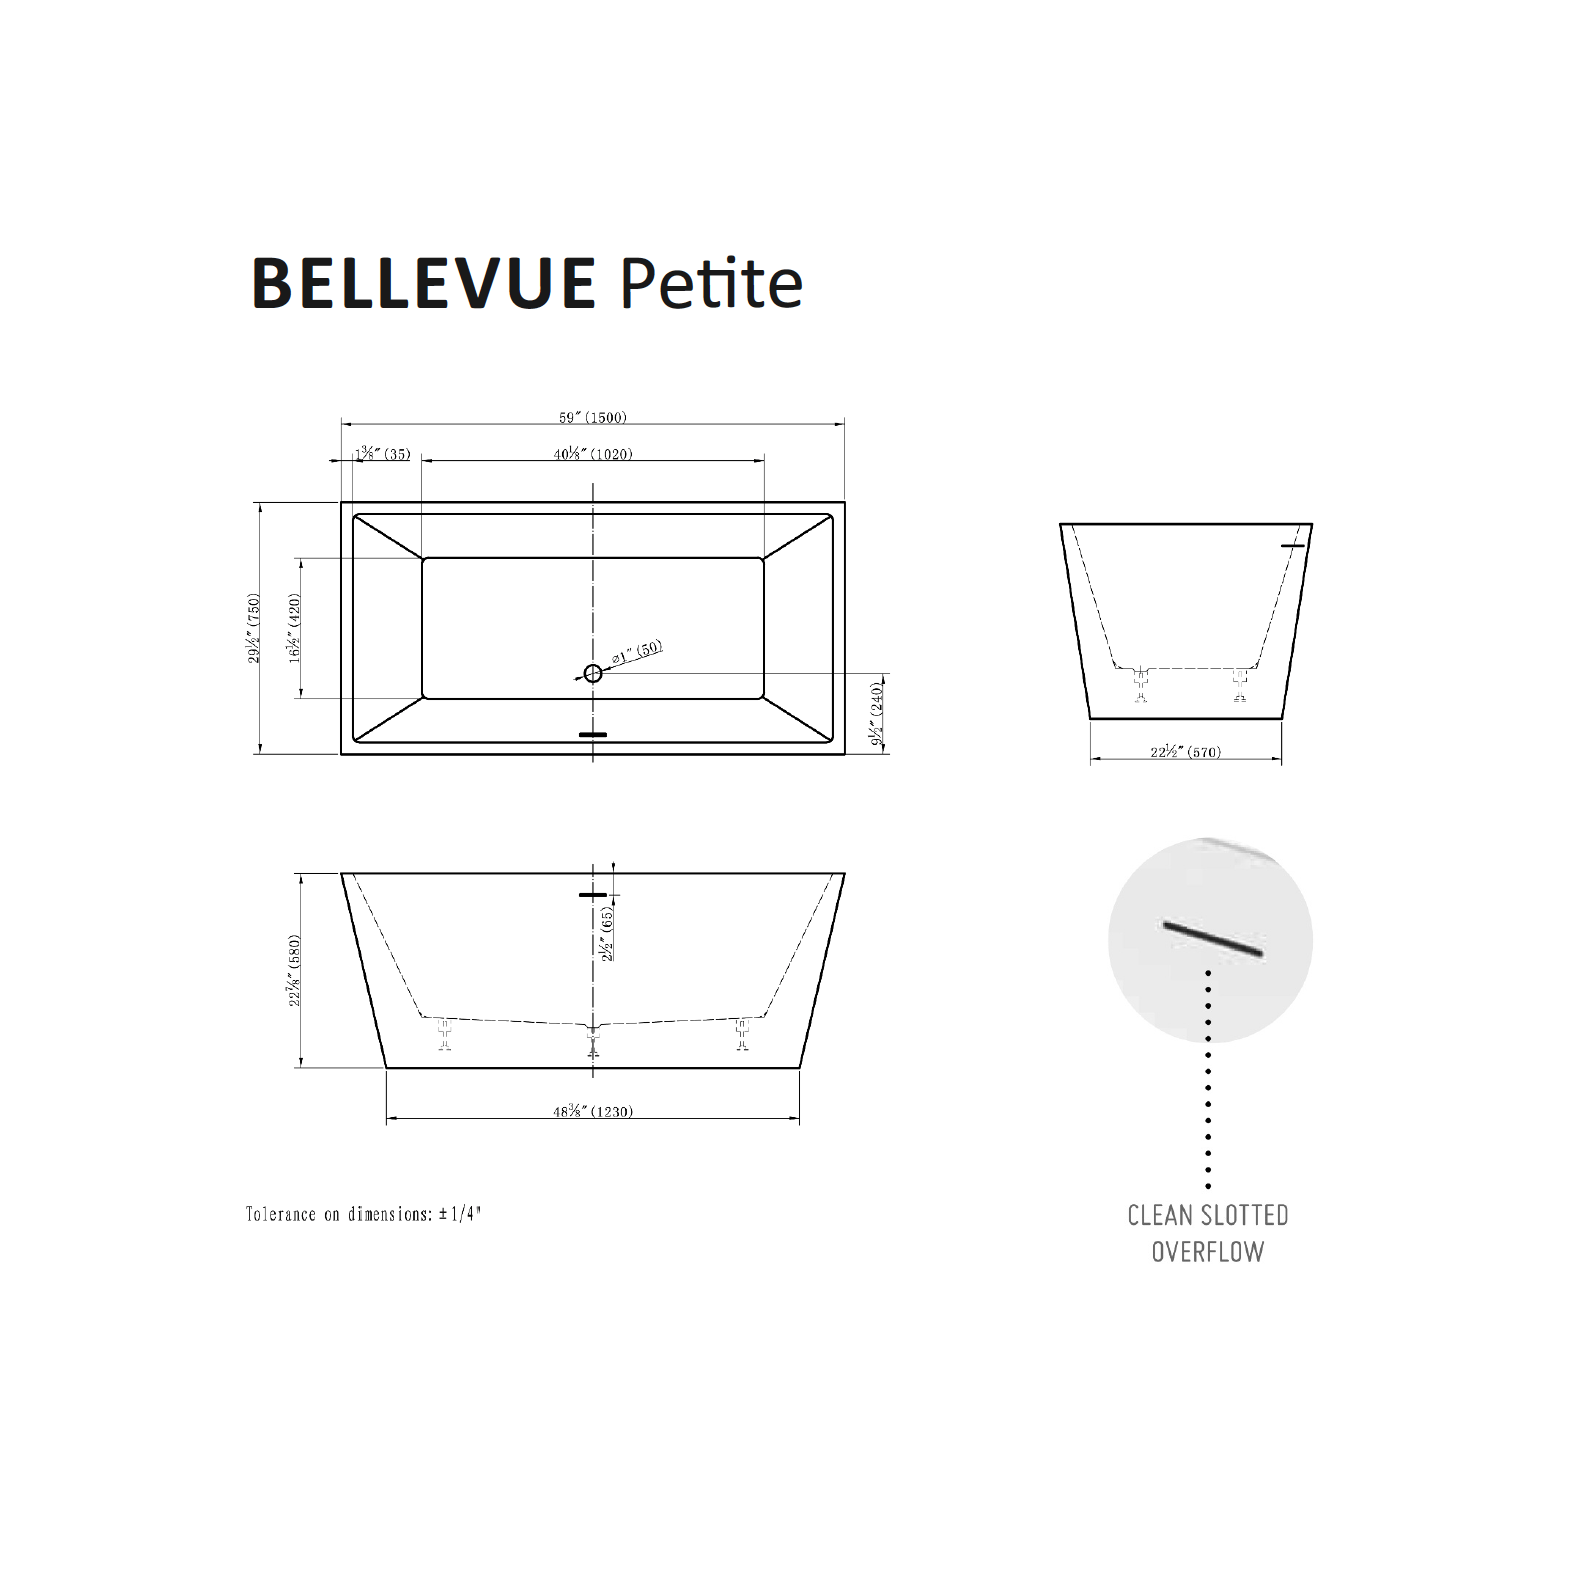 Bellevue Petite Tub Specifications